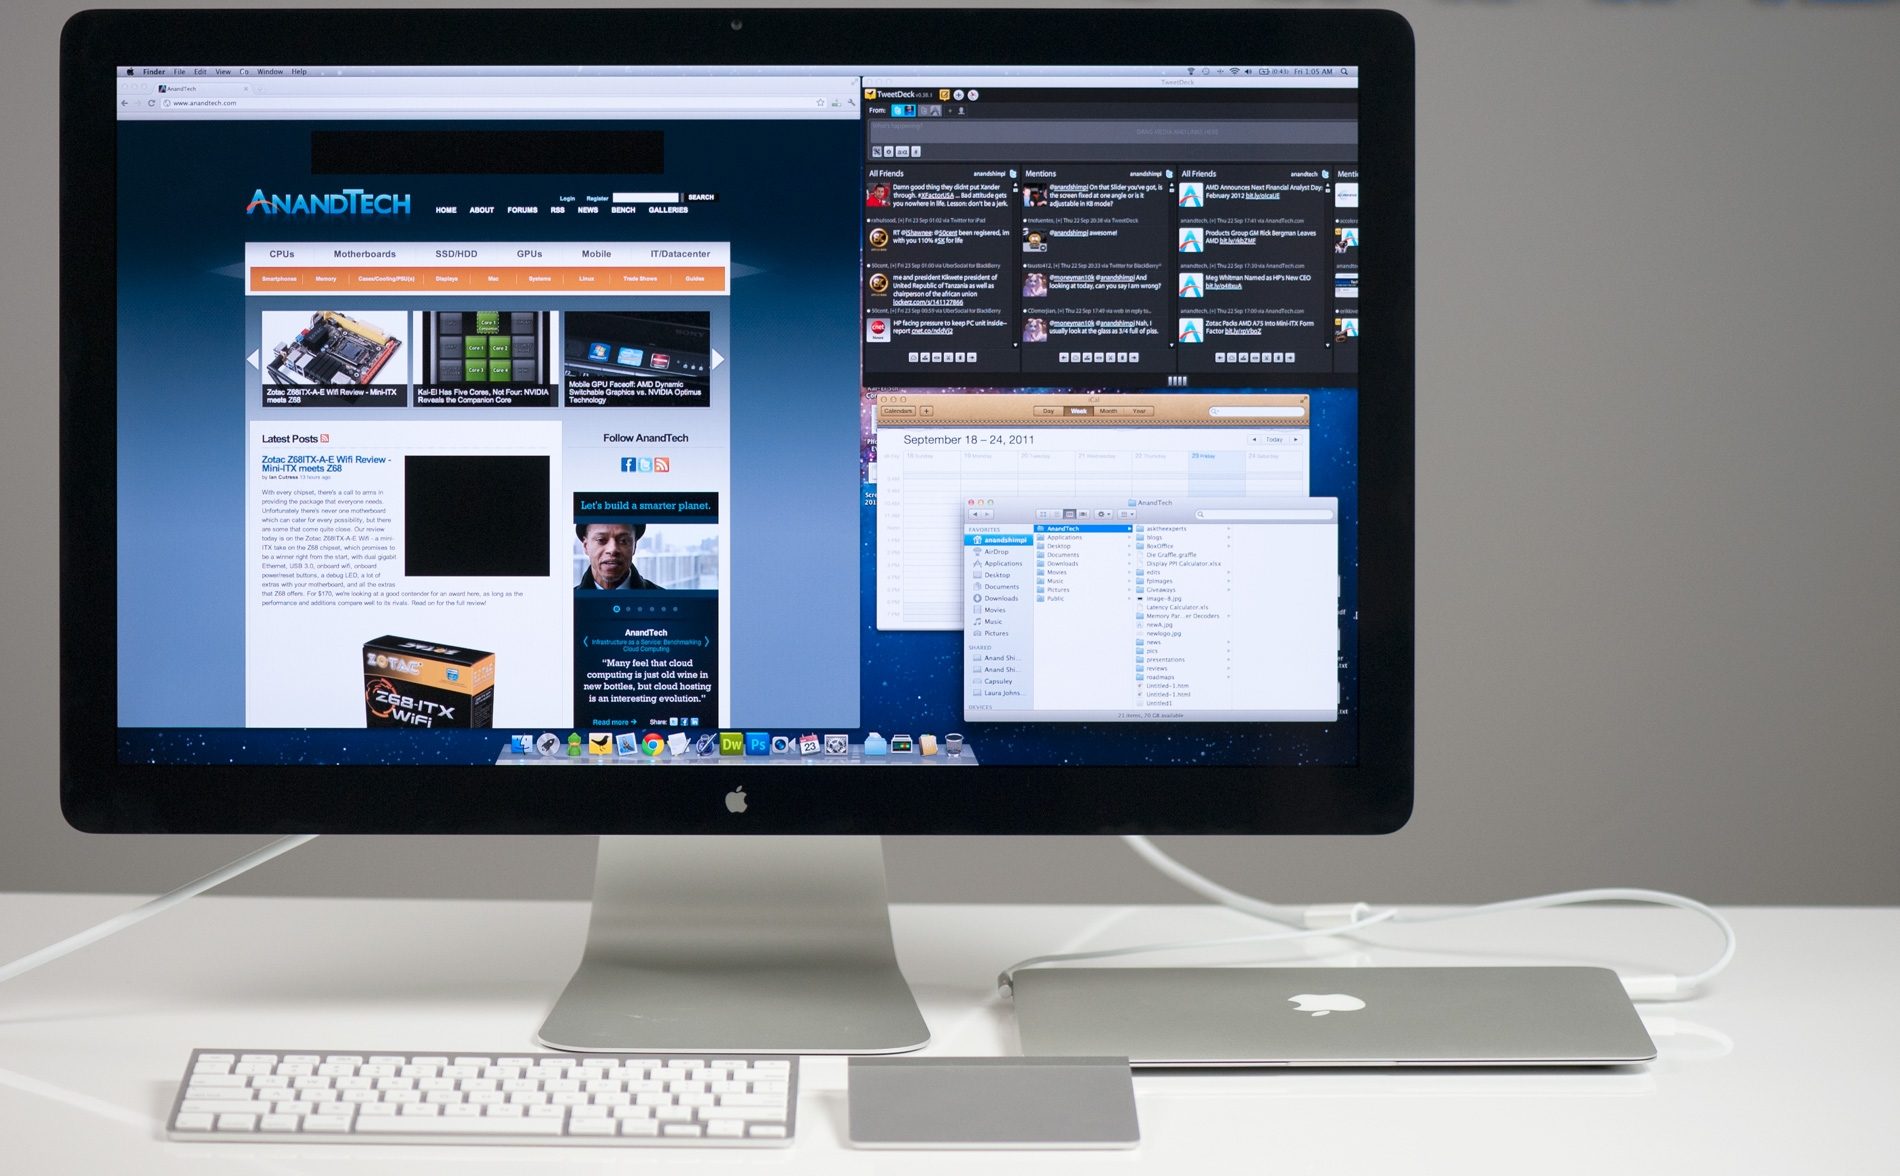 The Apple Thunderbolt Display Review